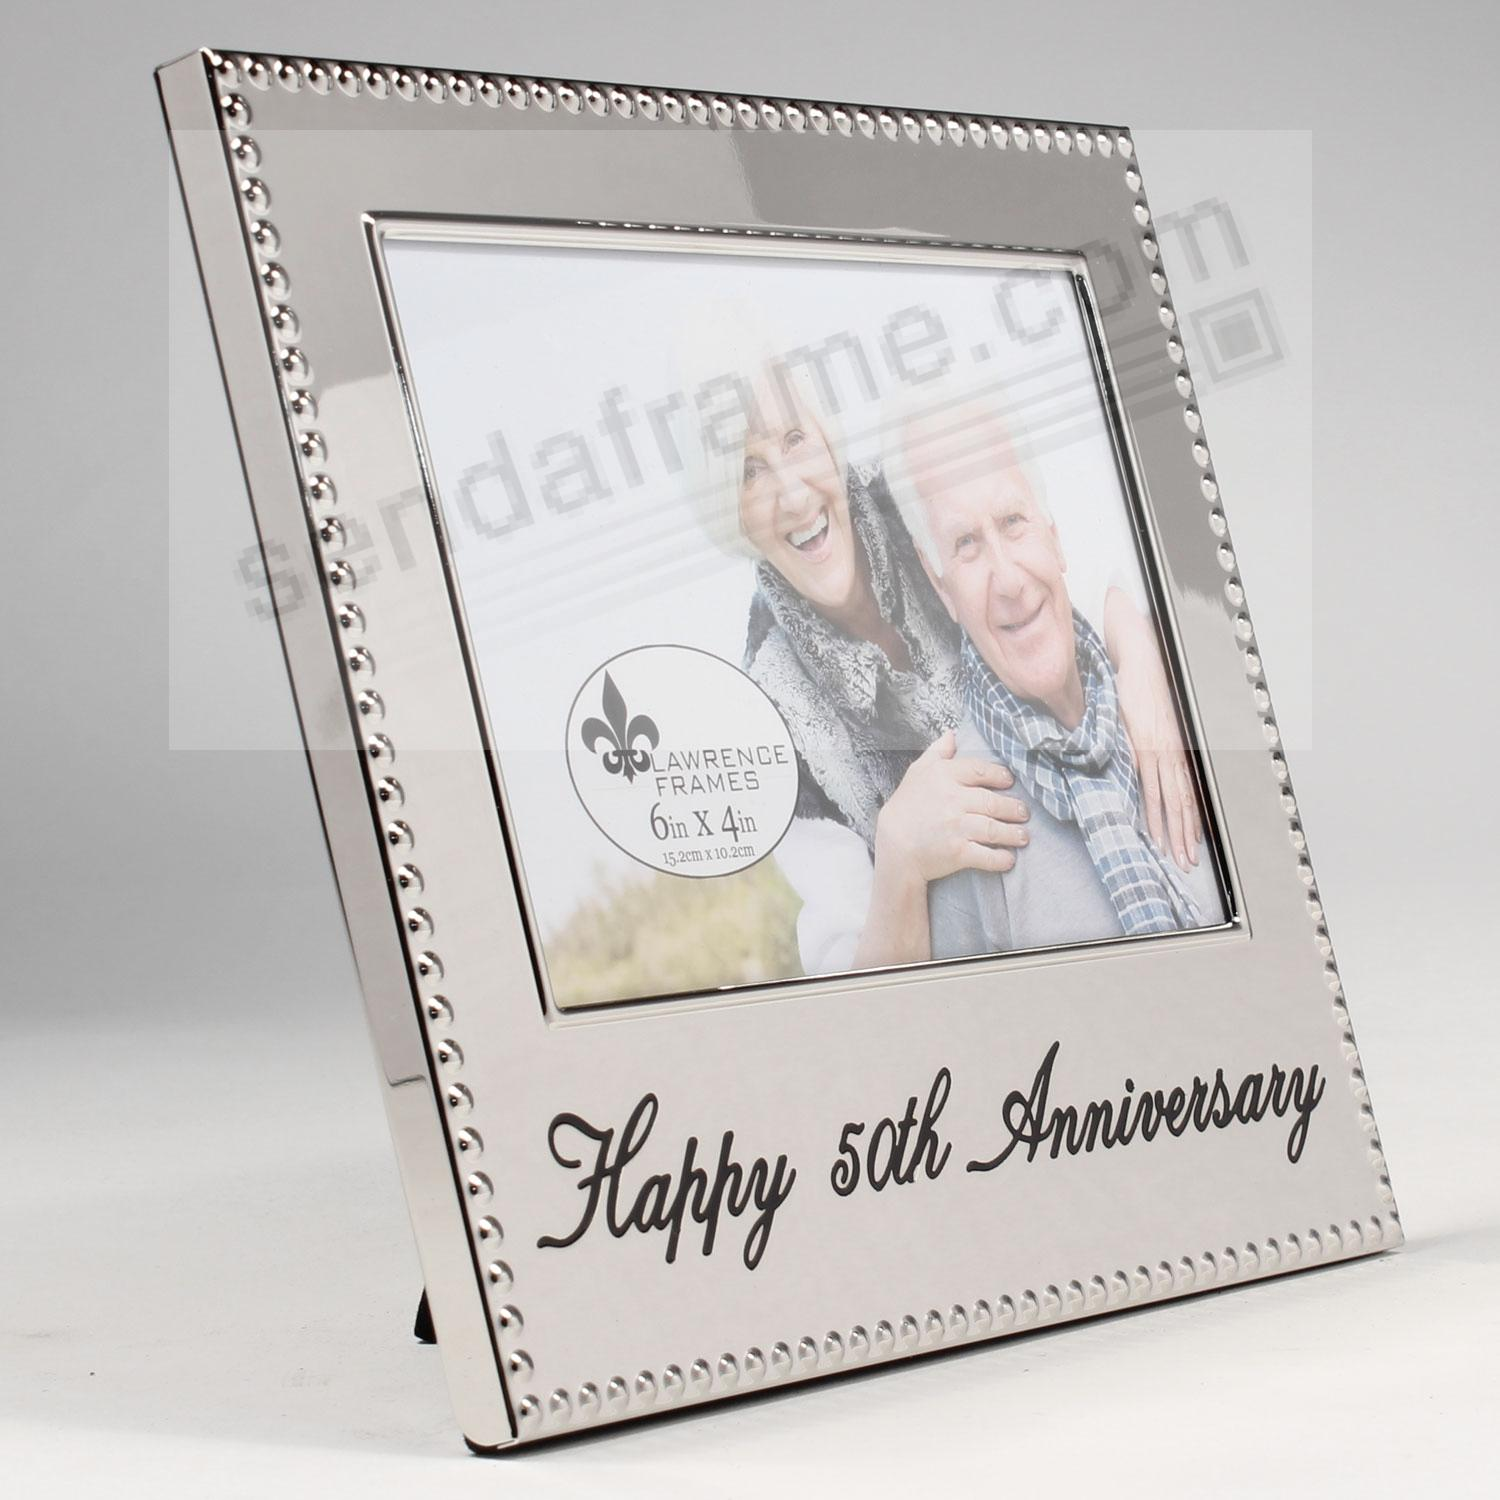 happy 50th anniversary special engraved celebration frame picture